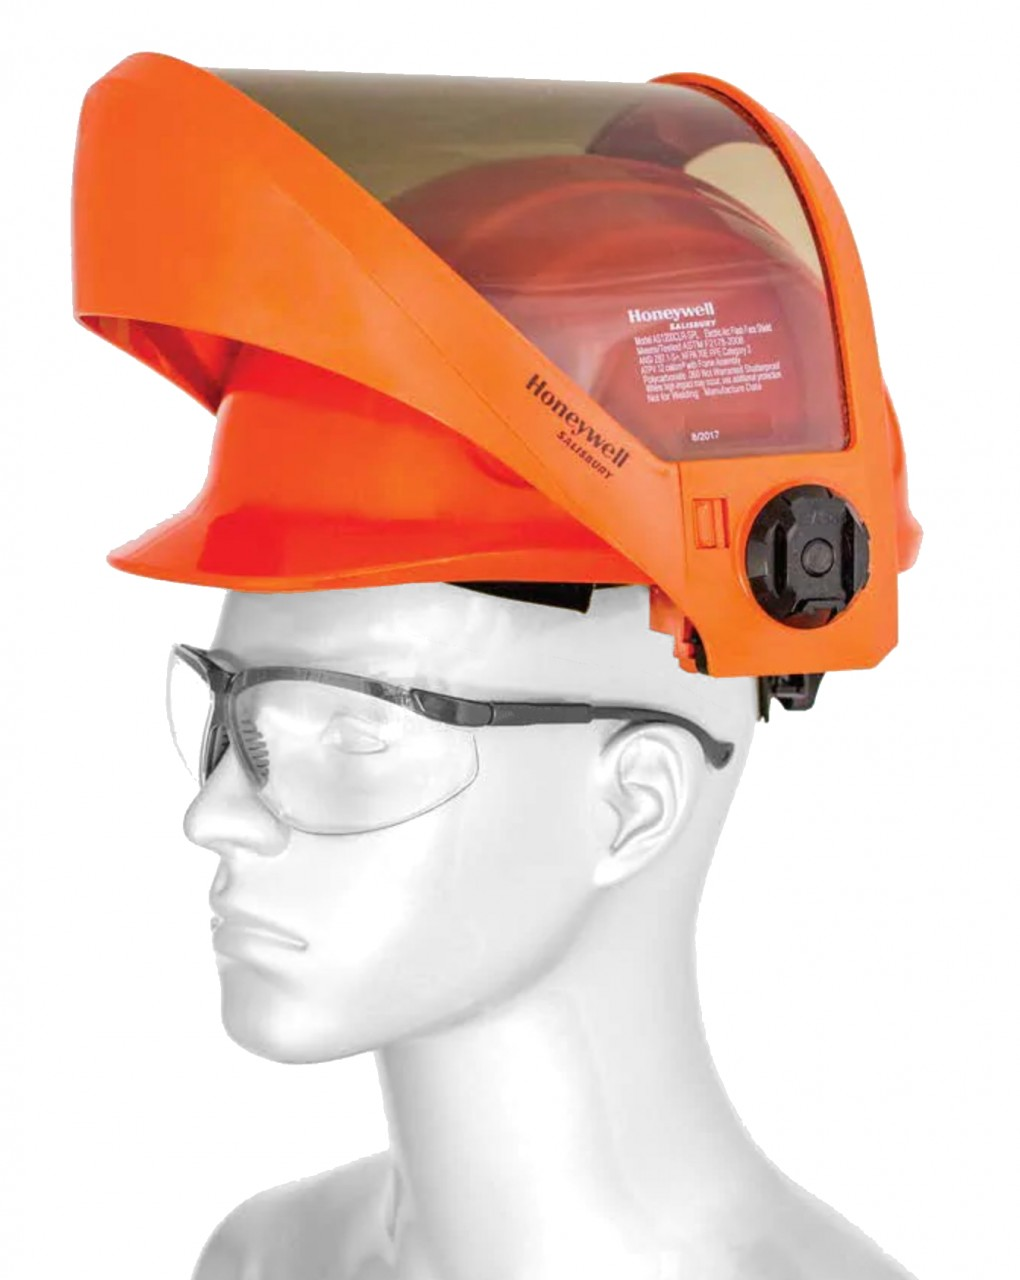 AS12G-CE, CE marked, grey tinted 12 cal arc flash helmet and visor